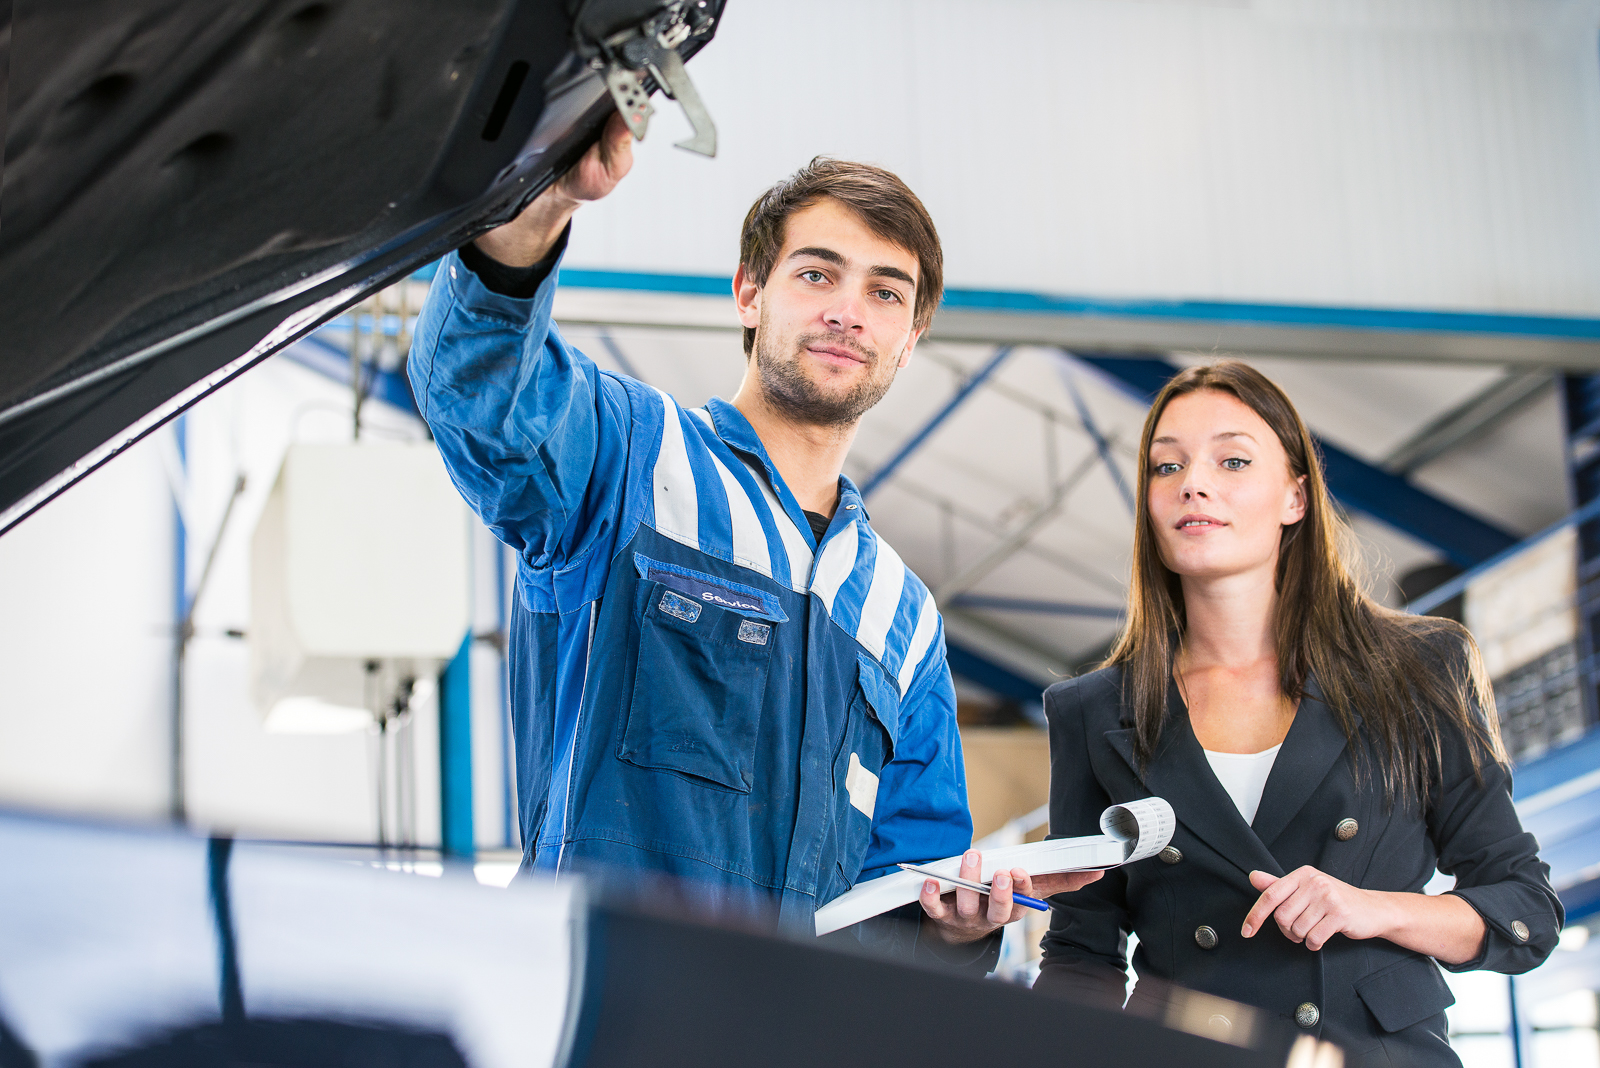 Mechanic, taking a look under the hood of a business woman's car with an order form and pen in his hand, assessing the work needed to fix her car